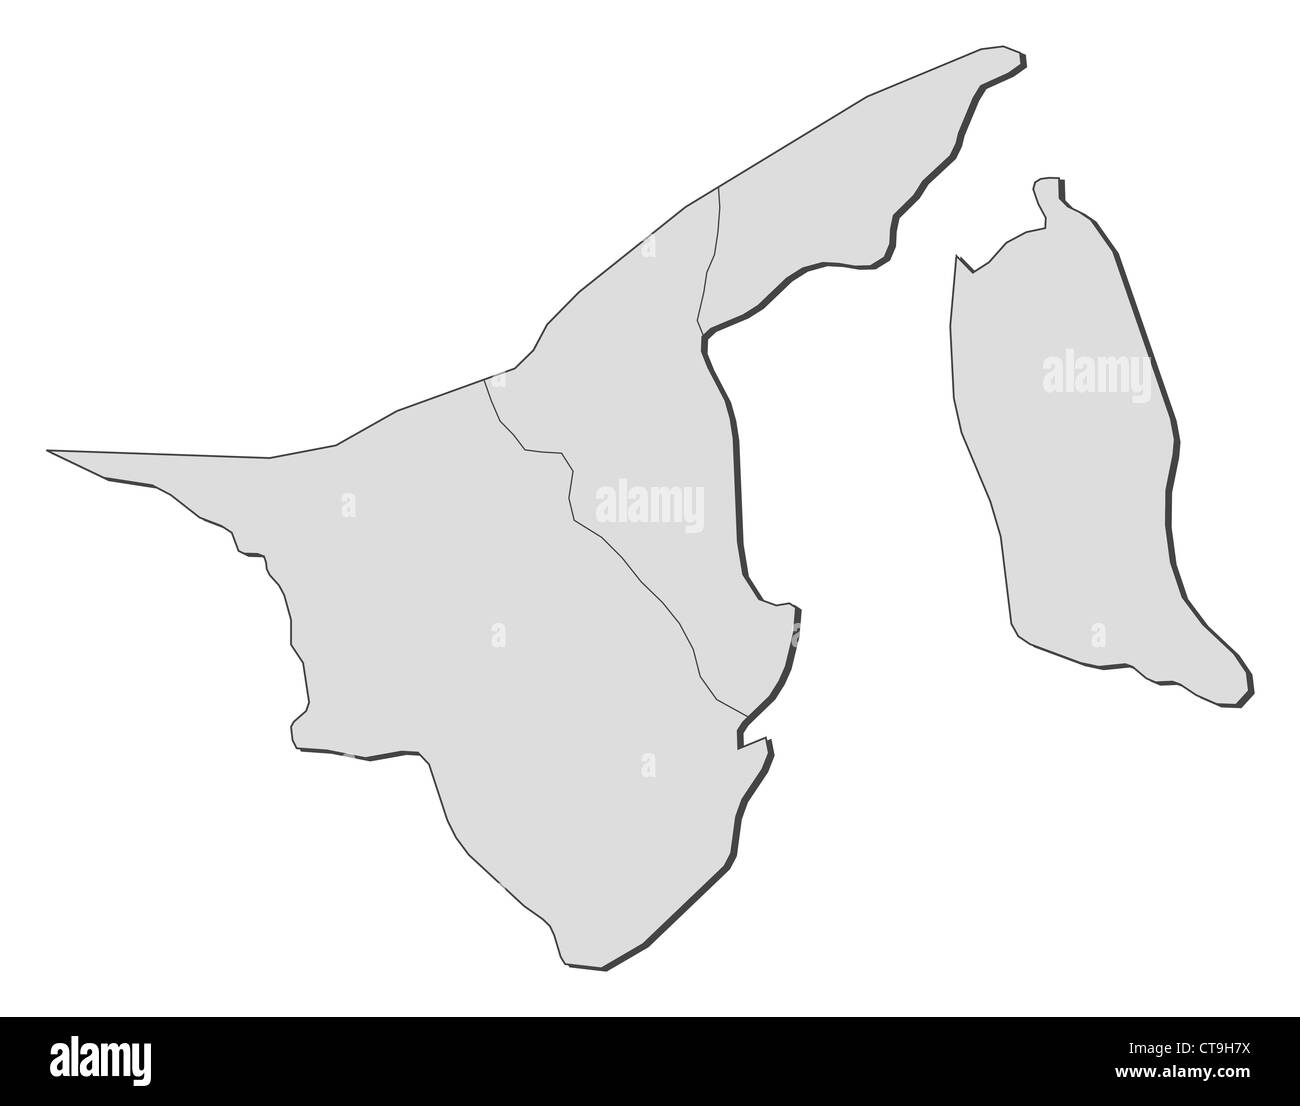 Political map of Brunei with the several Districts. - Stock Image